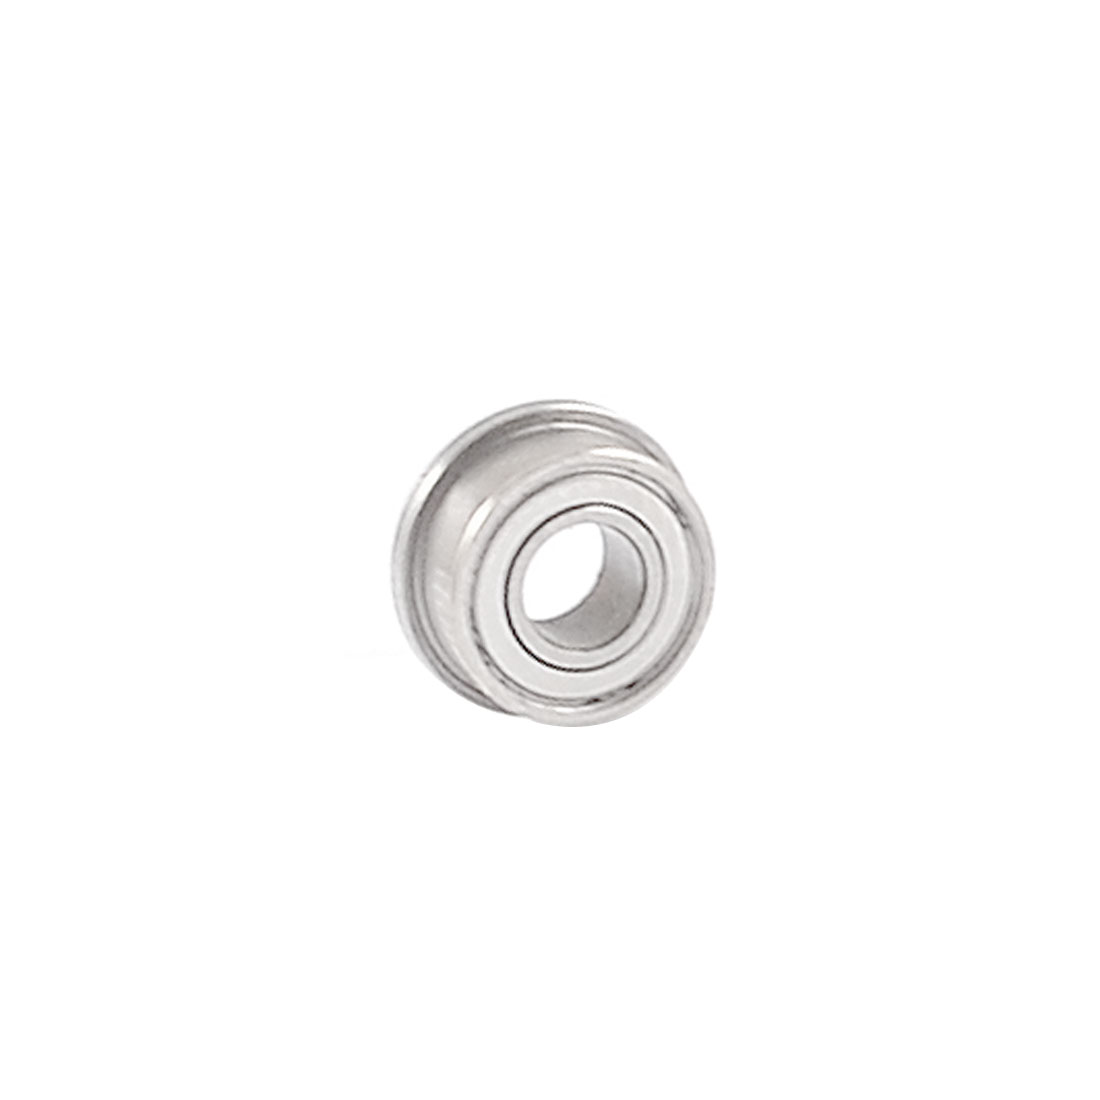 9mm x 4mm x 4mm Metal Shields Deep Groove Flanged Ball Bearing Silver Tone